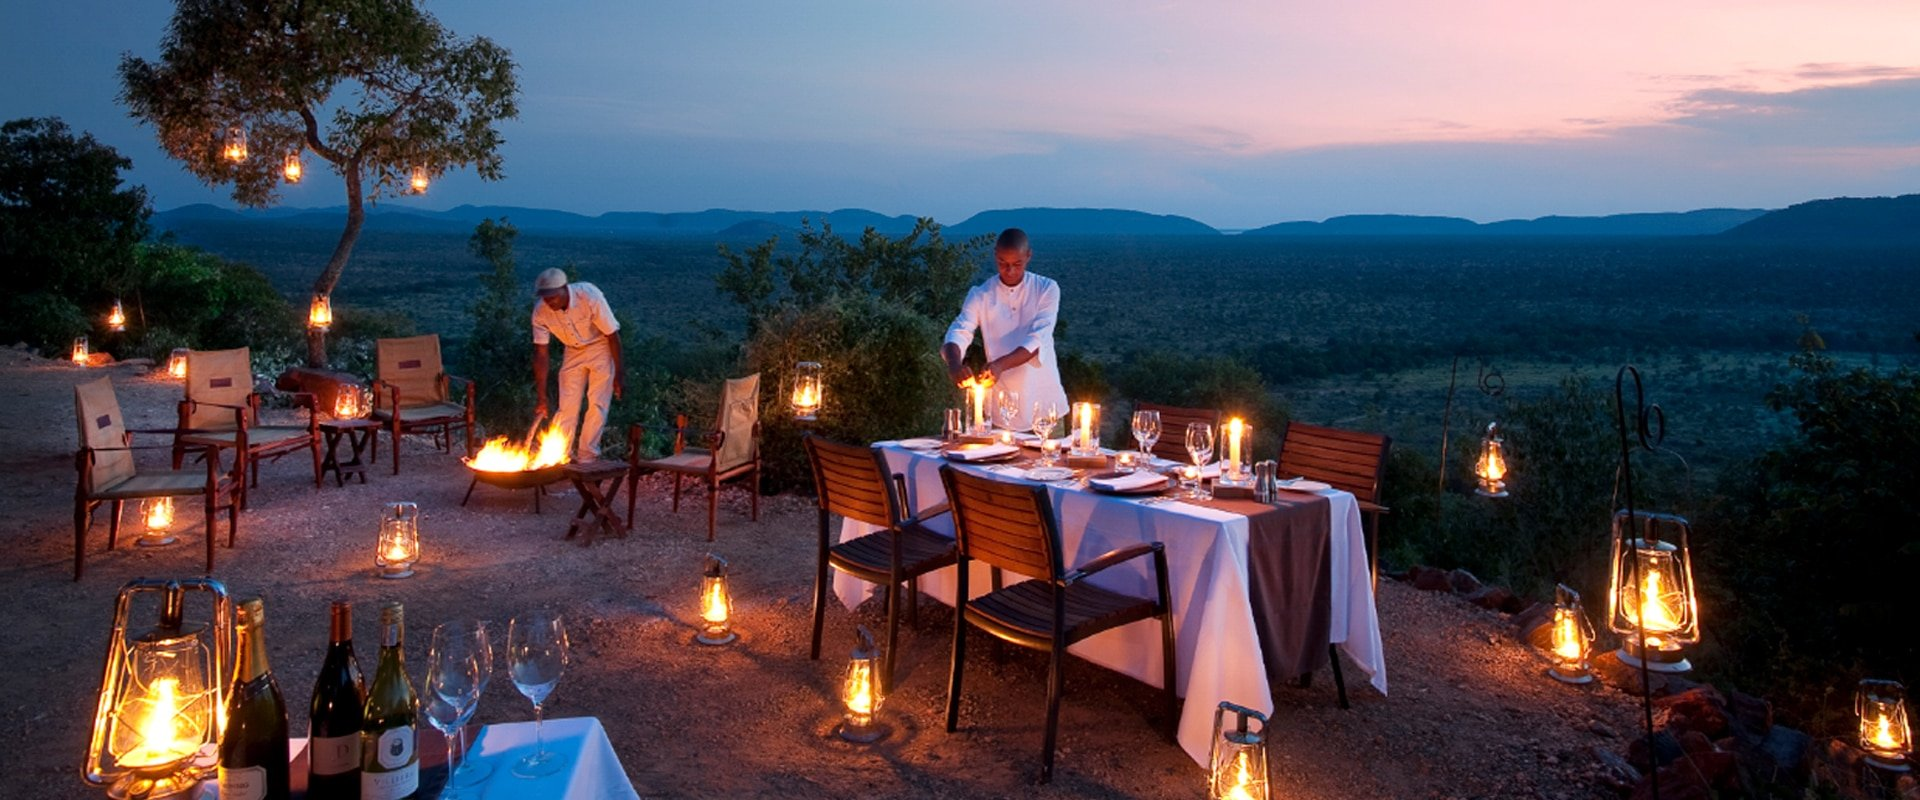 Enjoy a sensational intimate dining experience surrounded by wildlife